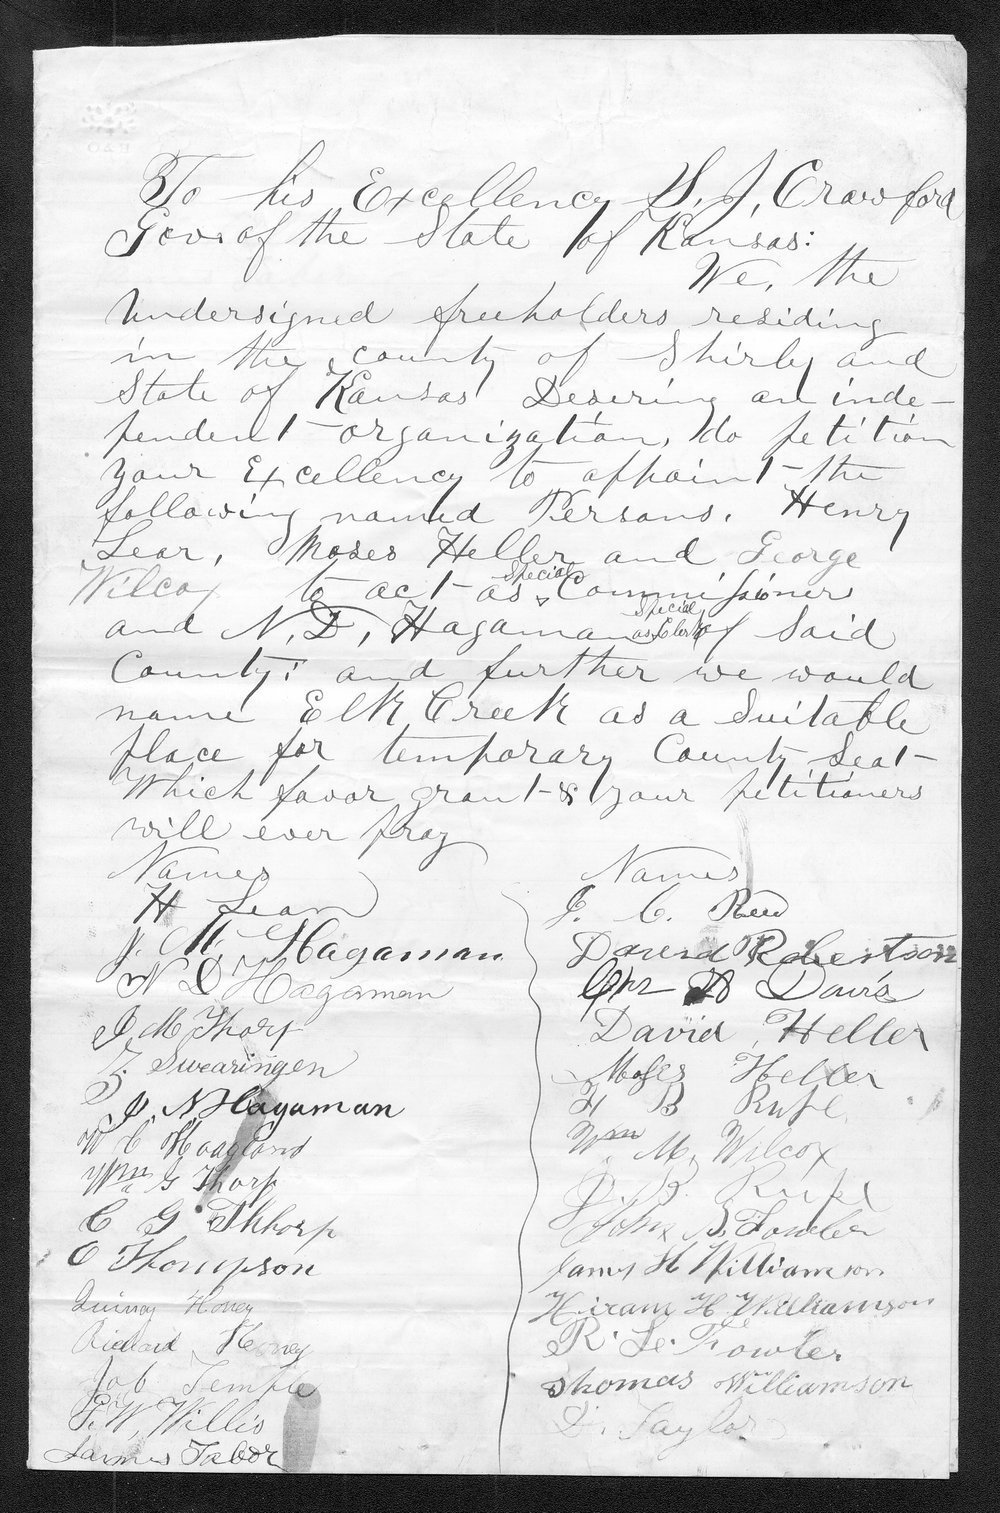 Shirley County organization records - 1